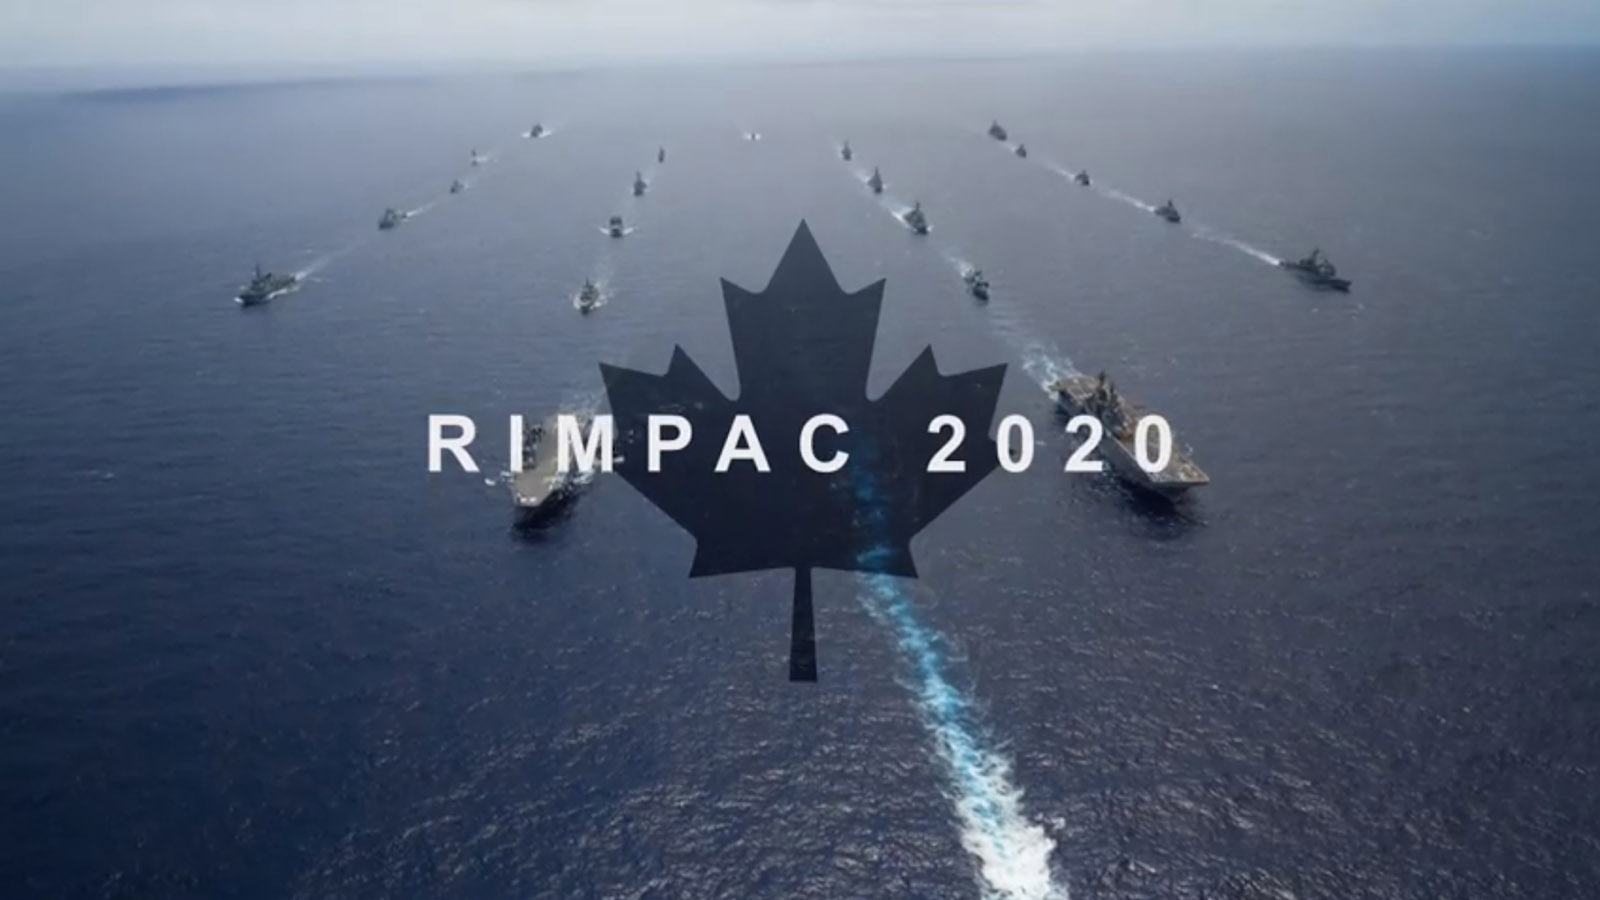 Diapositive - RIMPAC 2020